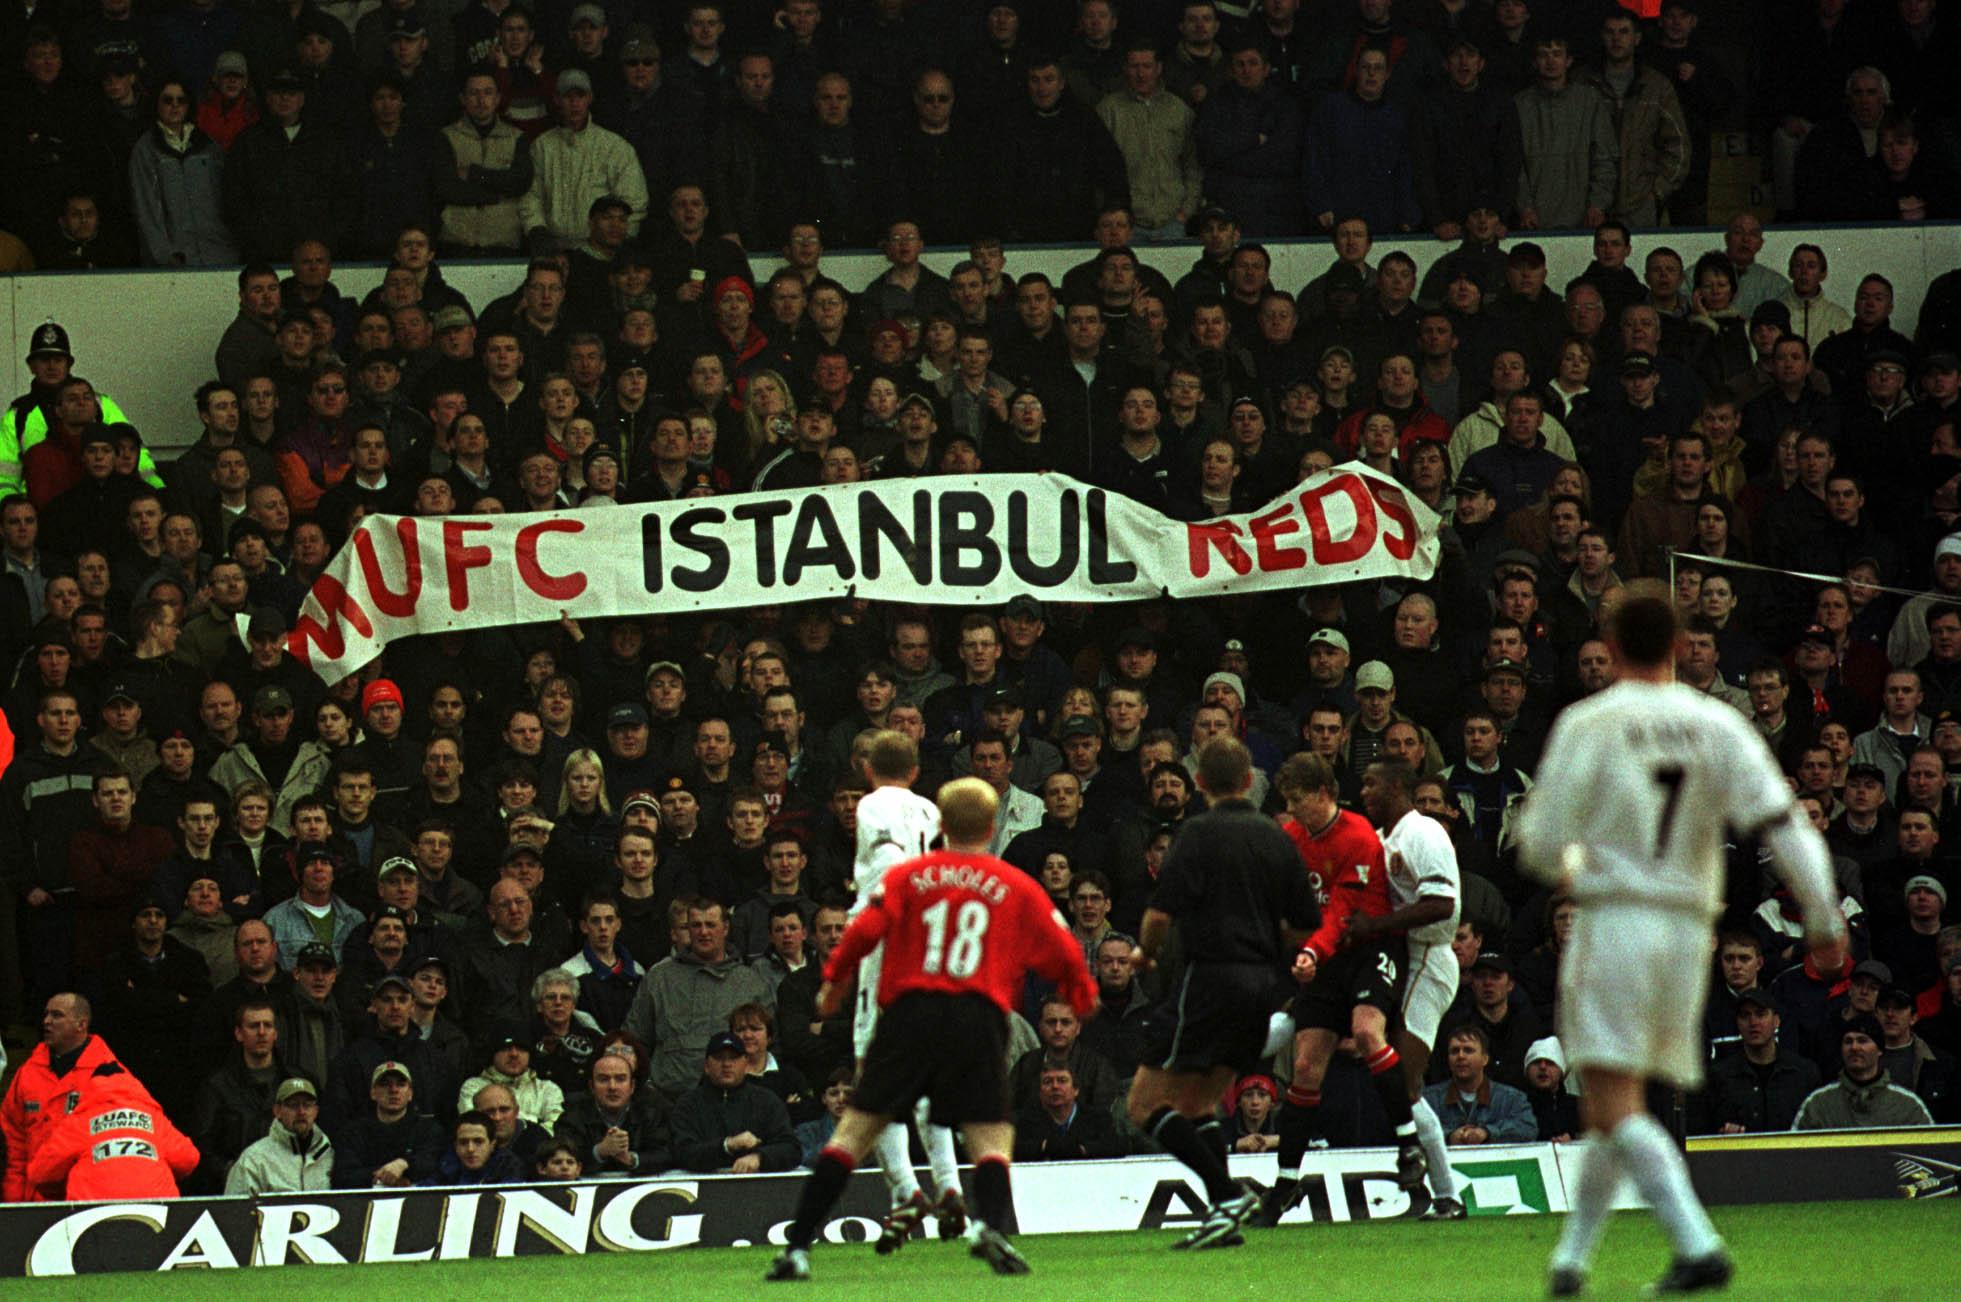 2001: Man United unfurl a banner in reference to the death of two Leeds fans